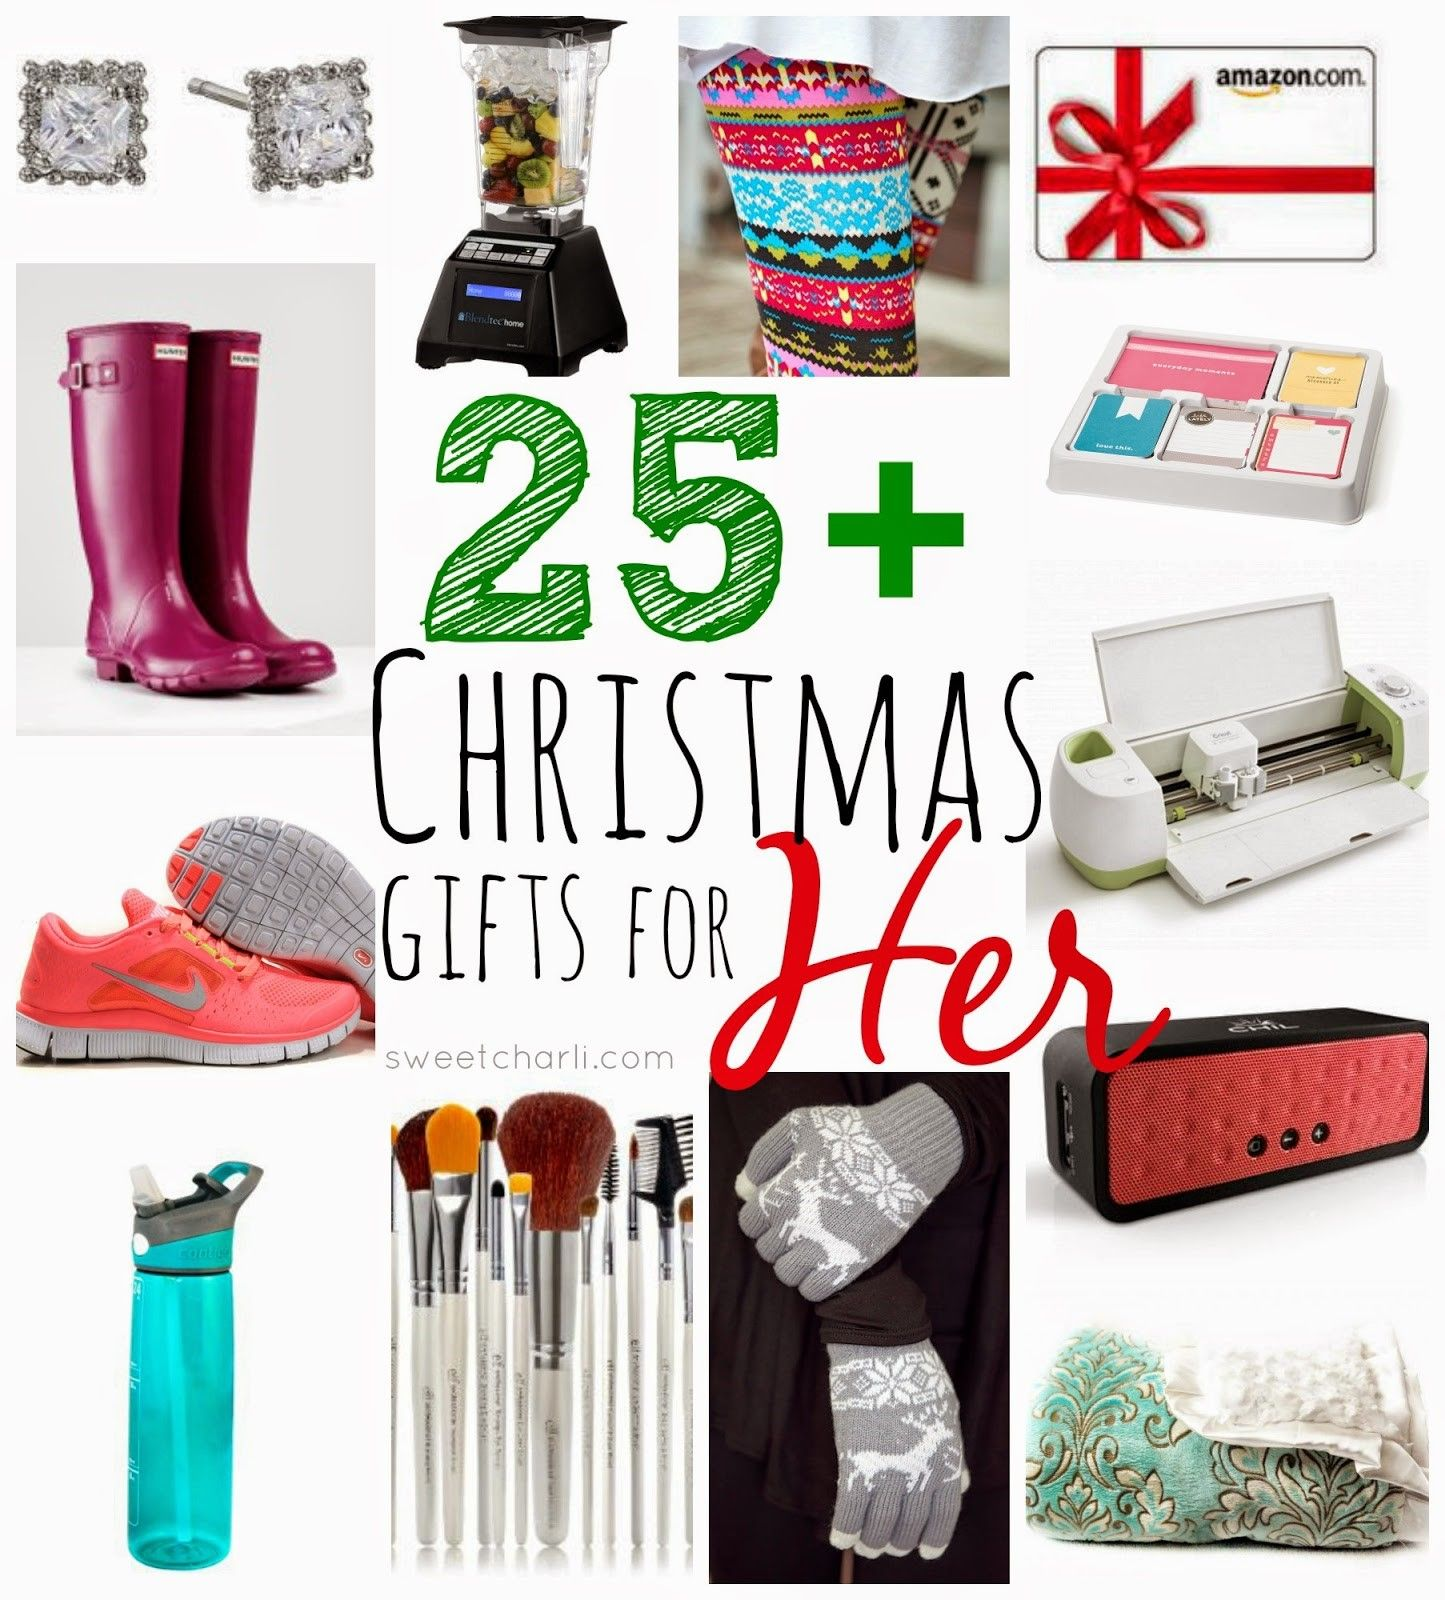 50 Marketing Tips To Rock Your Holiday S Sweet Charli Christmas Gifts For Her